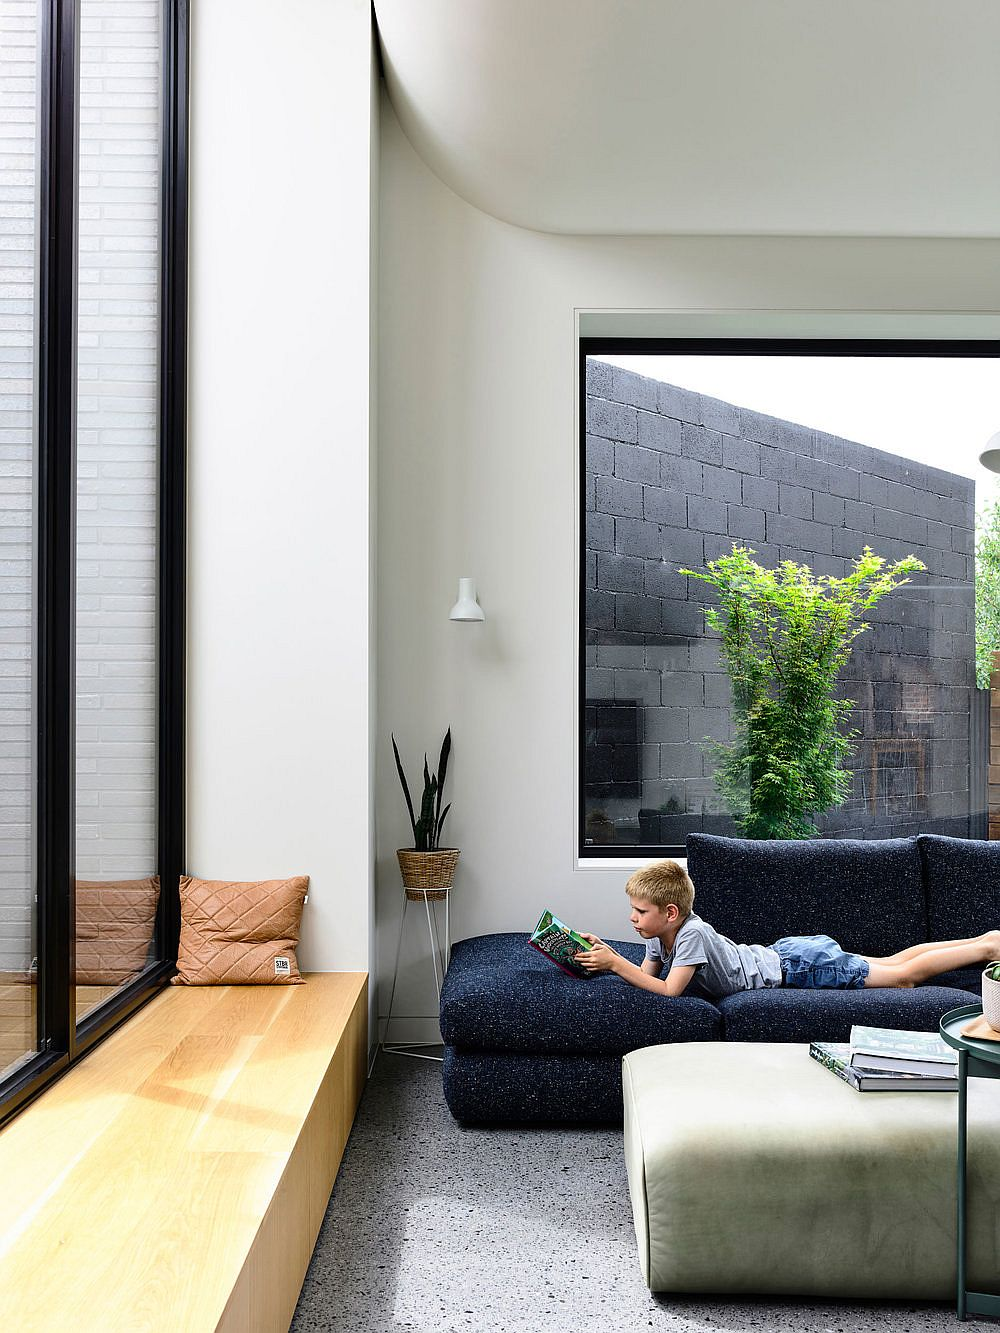 Window-seats-and-large-windows-connect-the-new-interior-seamless-with-the-outdoors-43635